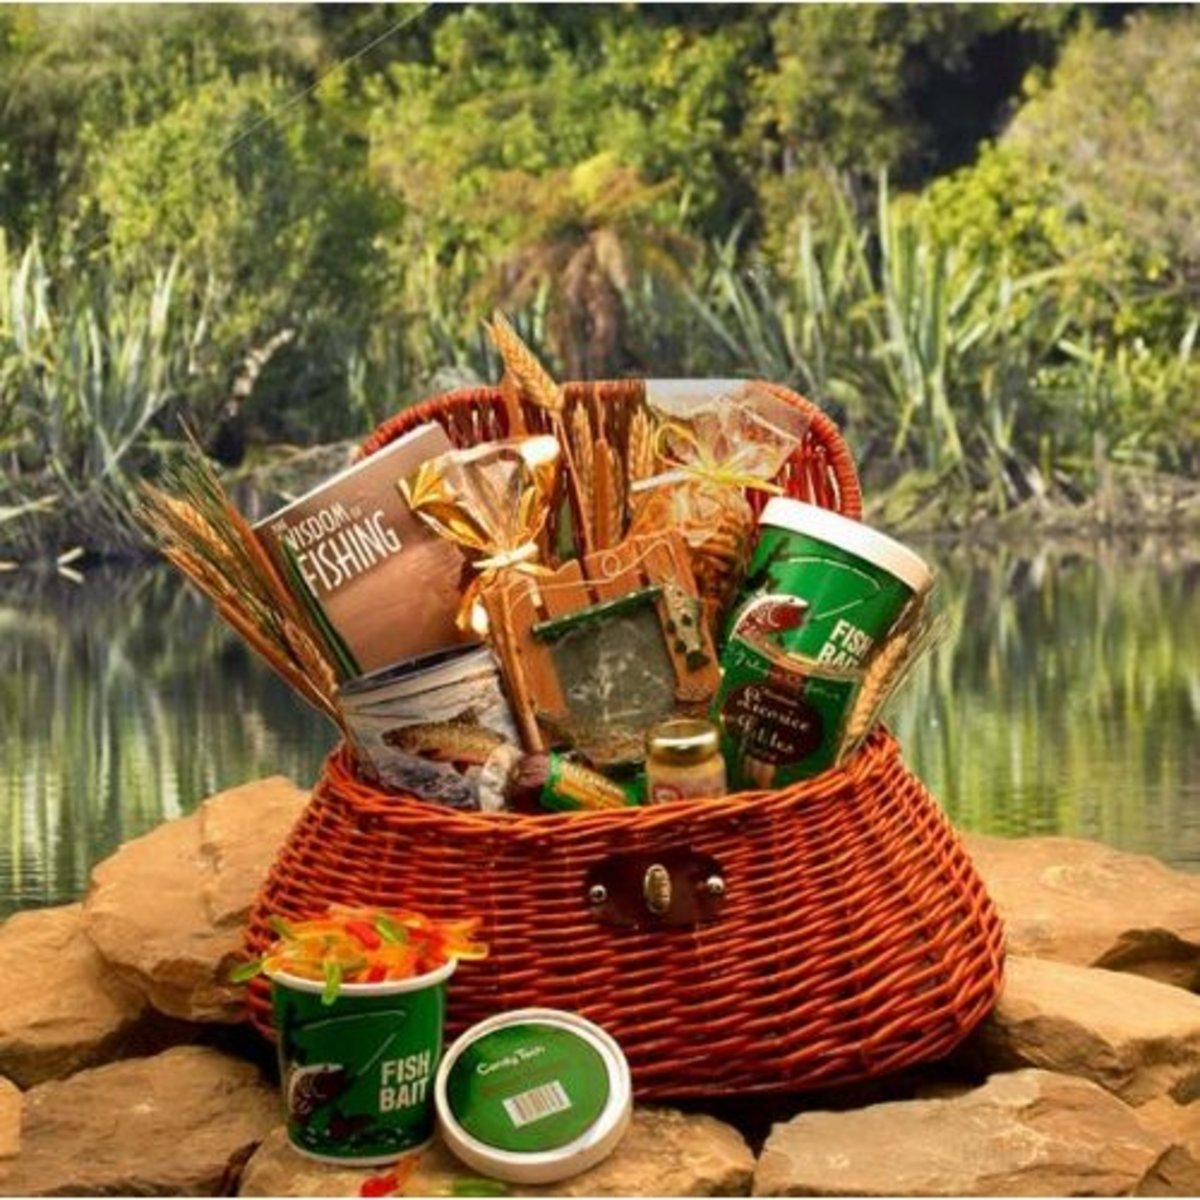 Reel It in Gourmet Fishing Creel Gift Basket | Great Fishing Gift Idea of Gourmet Snacks - perfect present for Father's Day for dads who love fishing